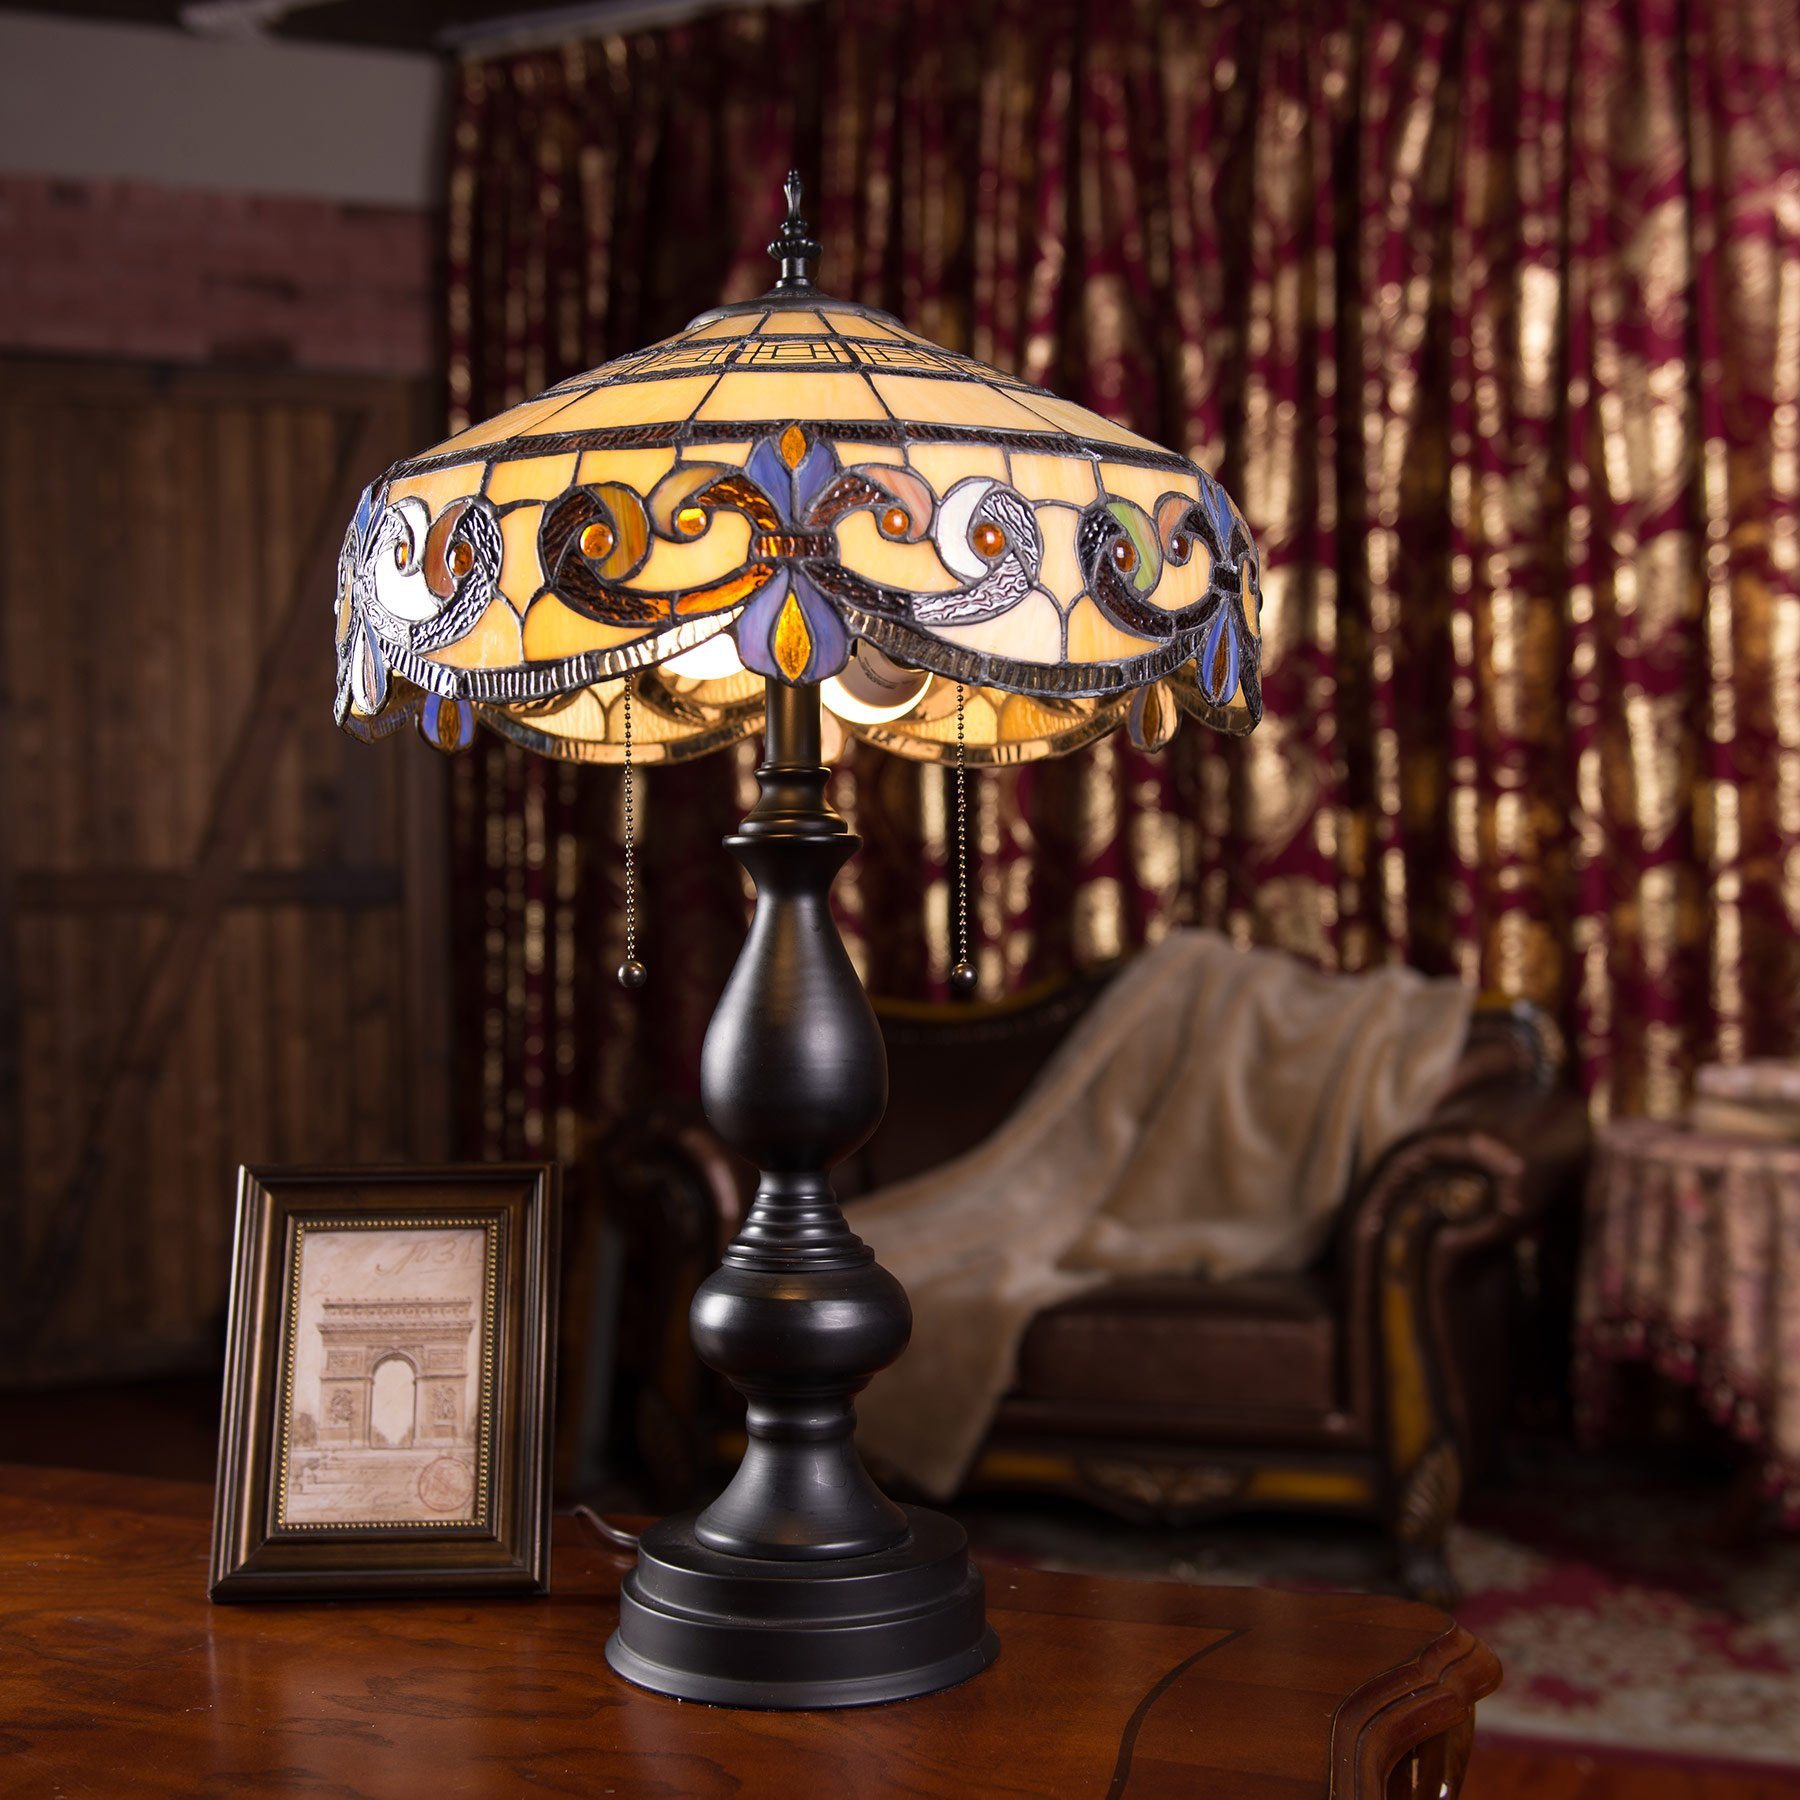 CO-Z Tiffany Style Table Lamps, 2-Light Victorian Desk Lamp with 16 Inches Stained Glass Shade, 25.5 Inches Height by CO-Z (Image #2)